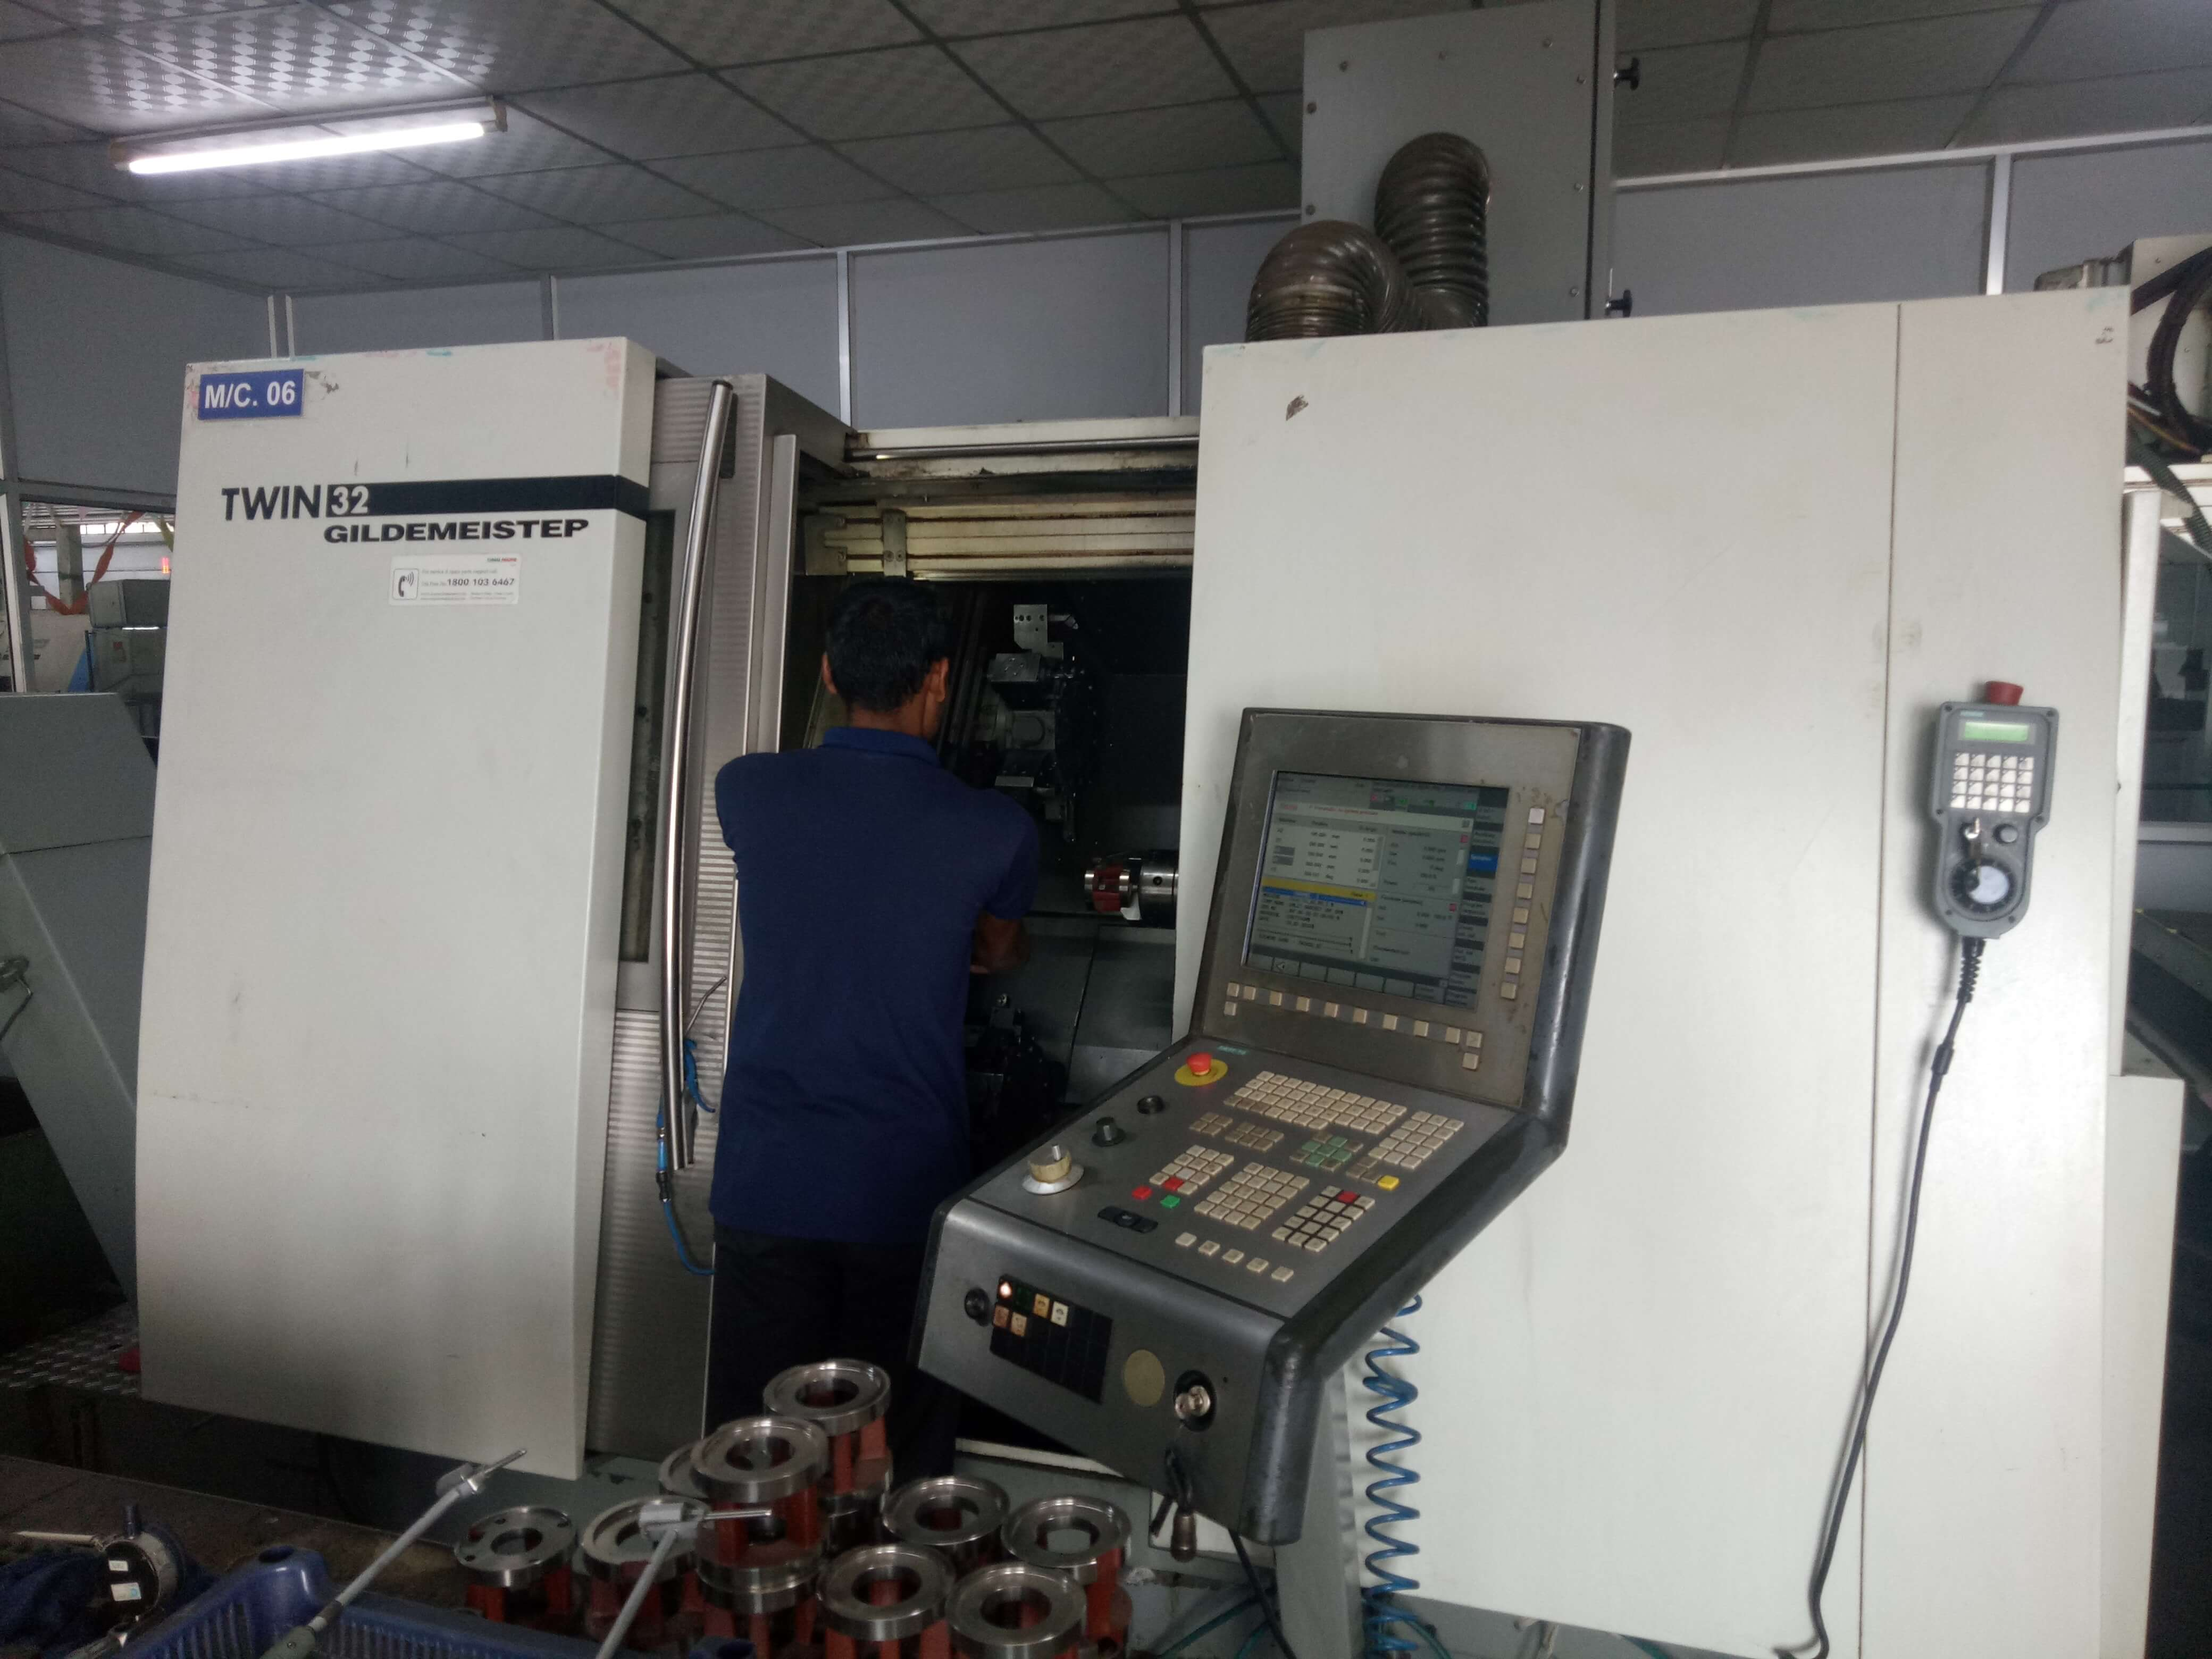 GILDEMEISTER TWIN 32 CNC Machine